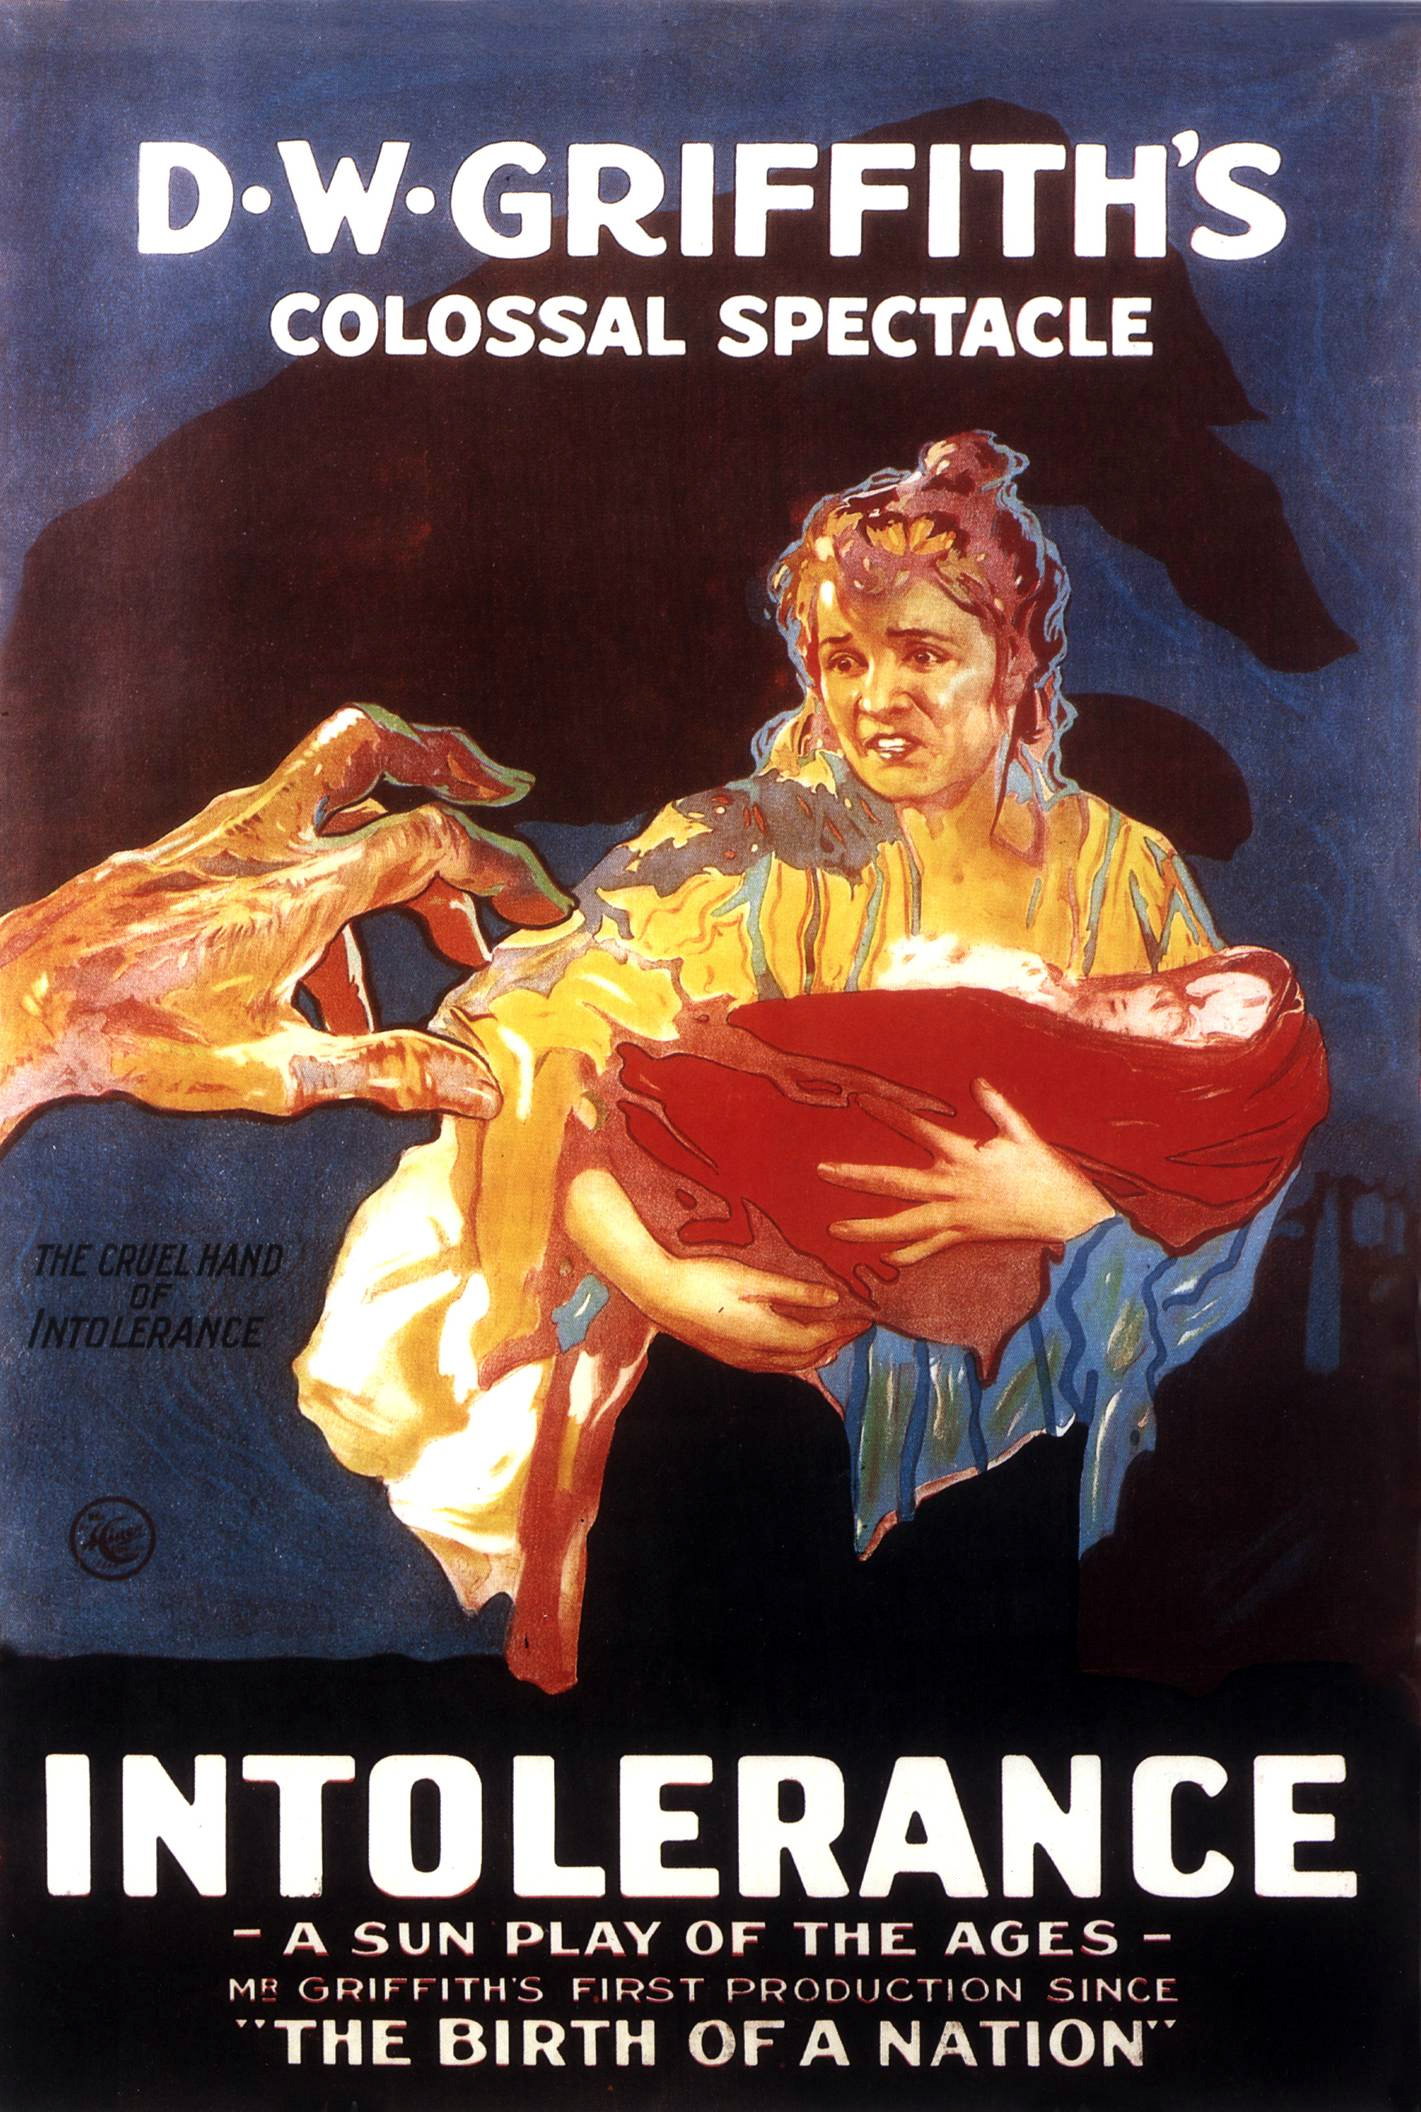 Poster for D. W. Griffith's movie 'Intolerance'